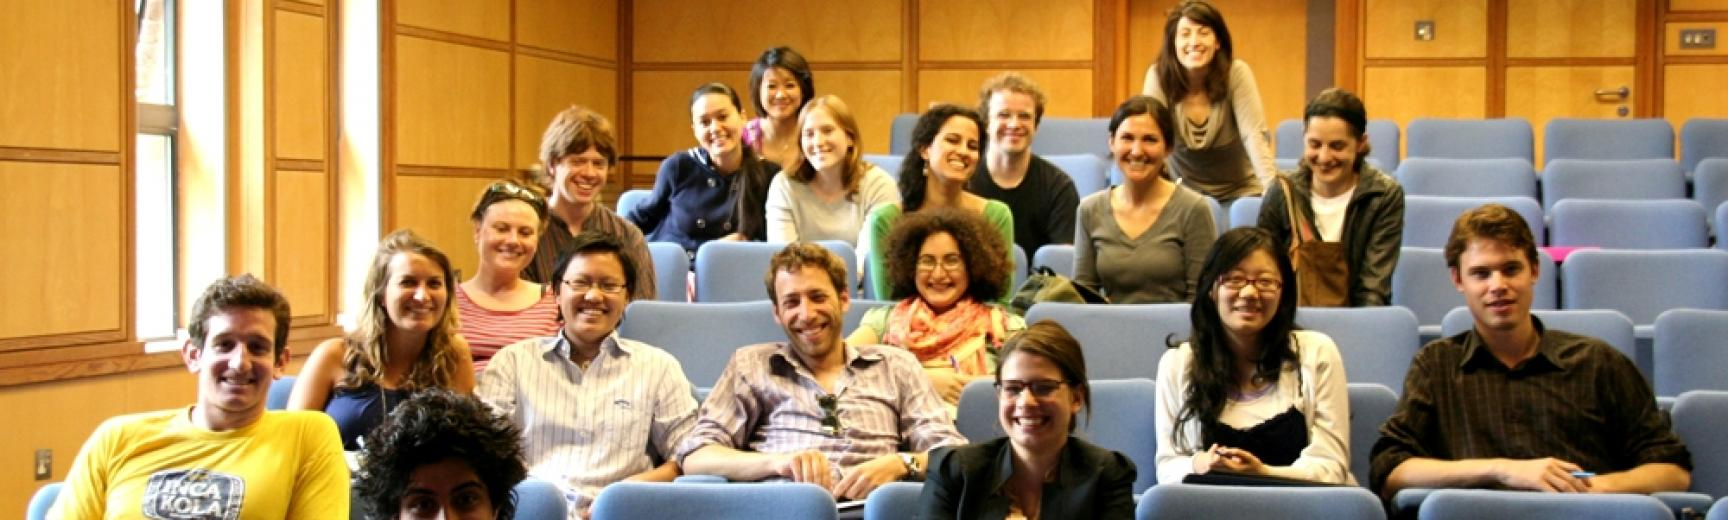 last lecture 25 May 2010.JPG